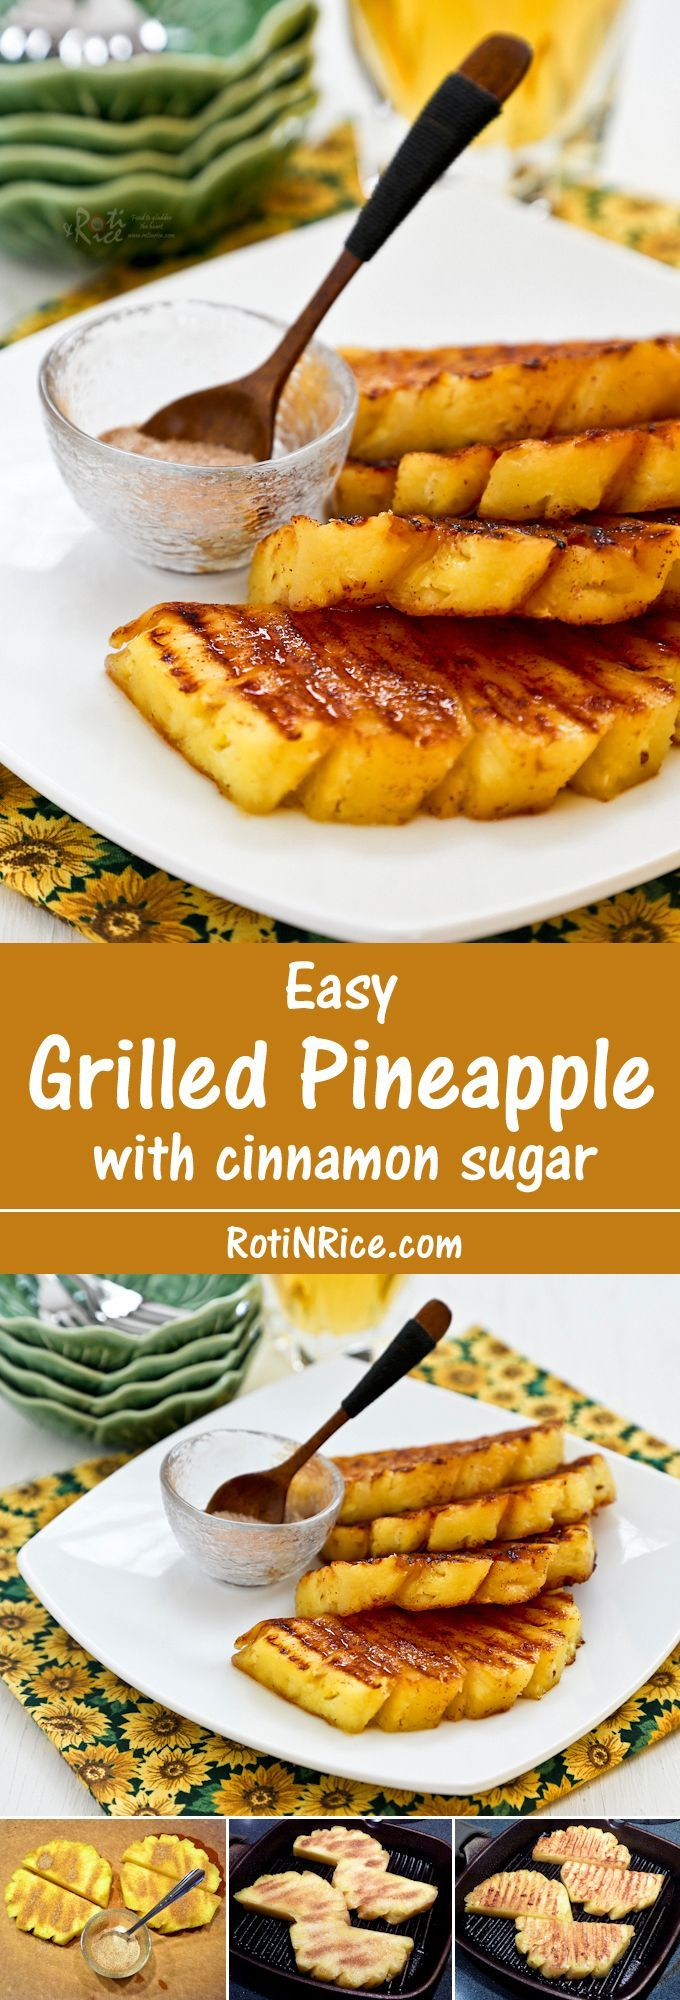 Grilled pineapple recipes easy